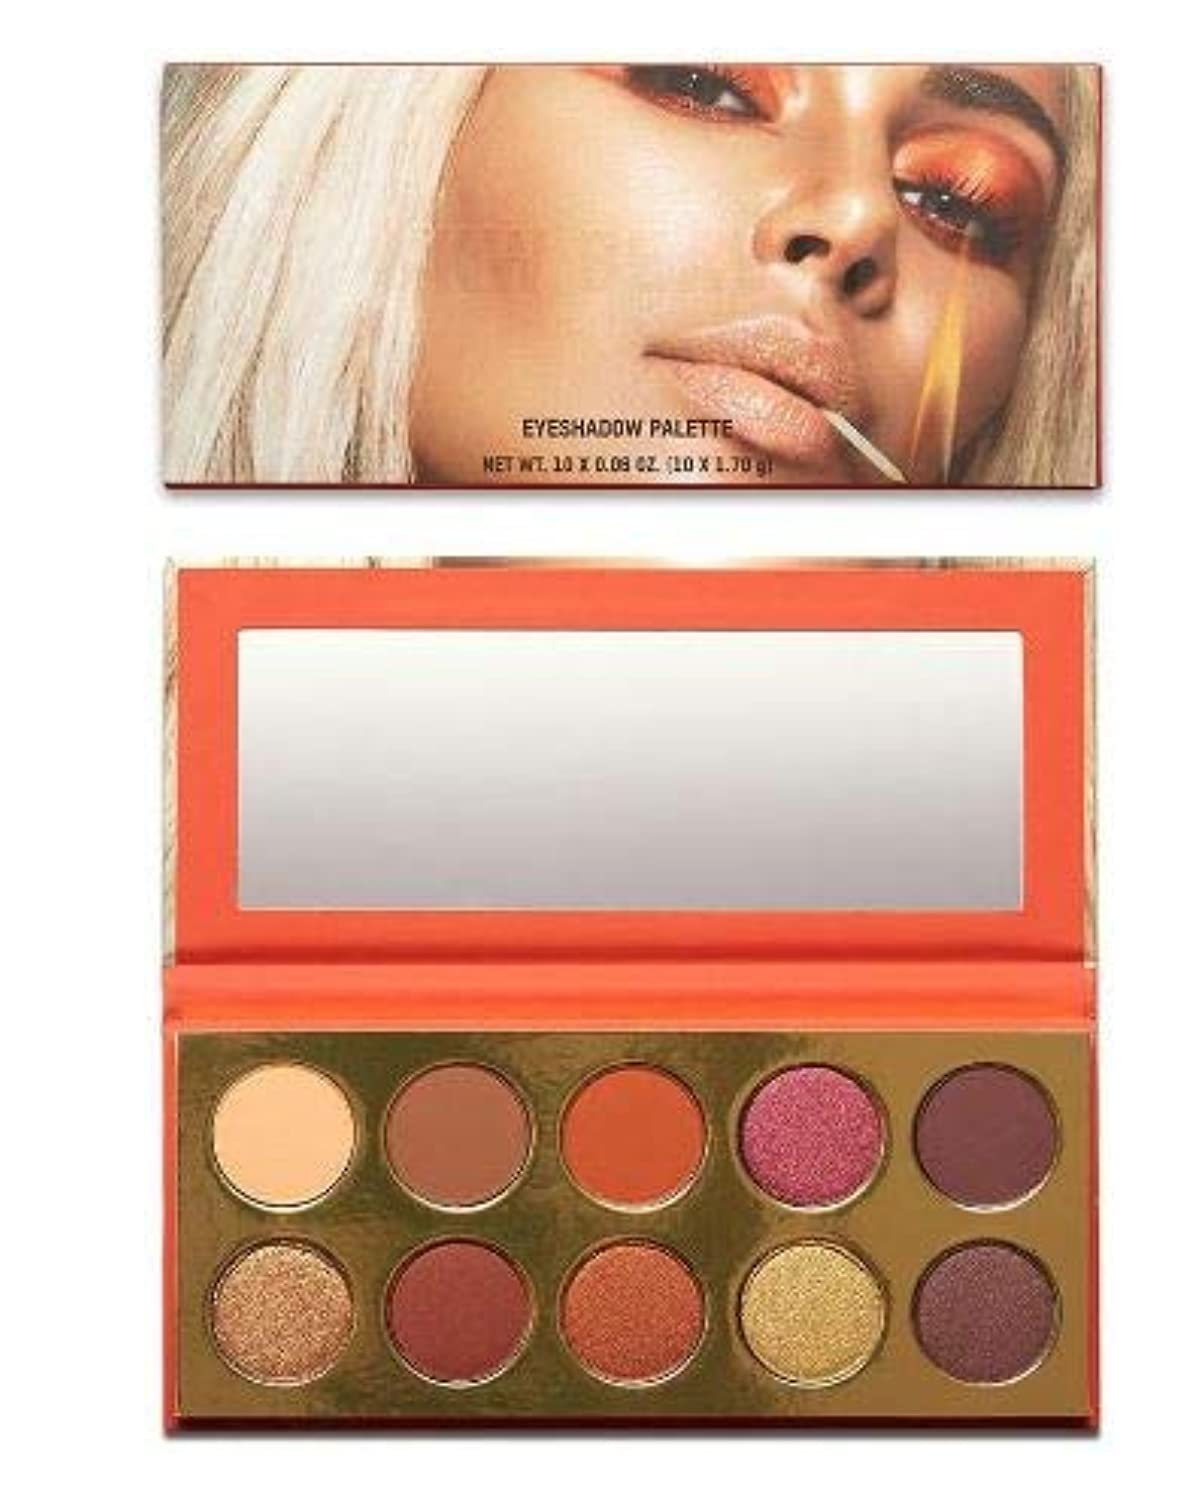 KKW BEAUTY Sooo Fire Eyeshadow Palette キムカーダシアン